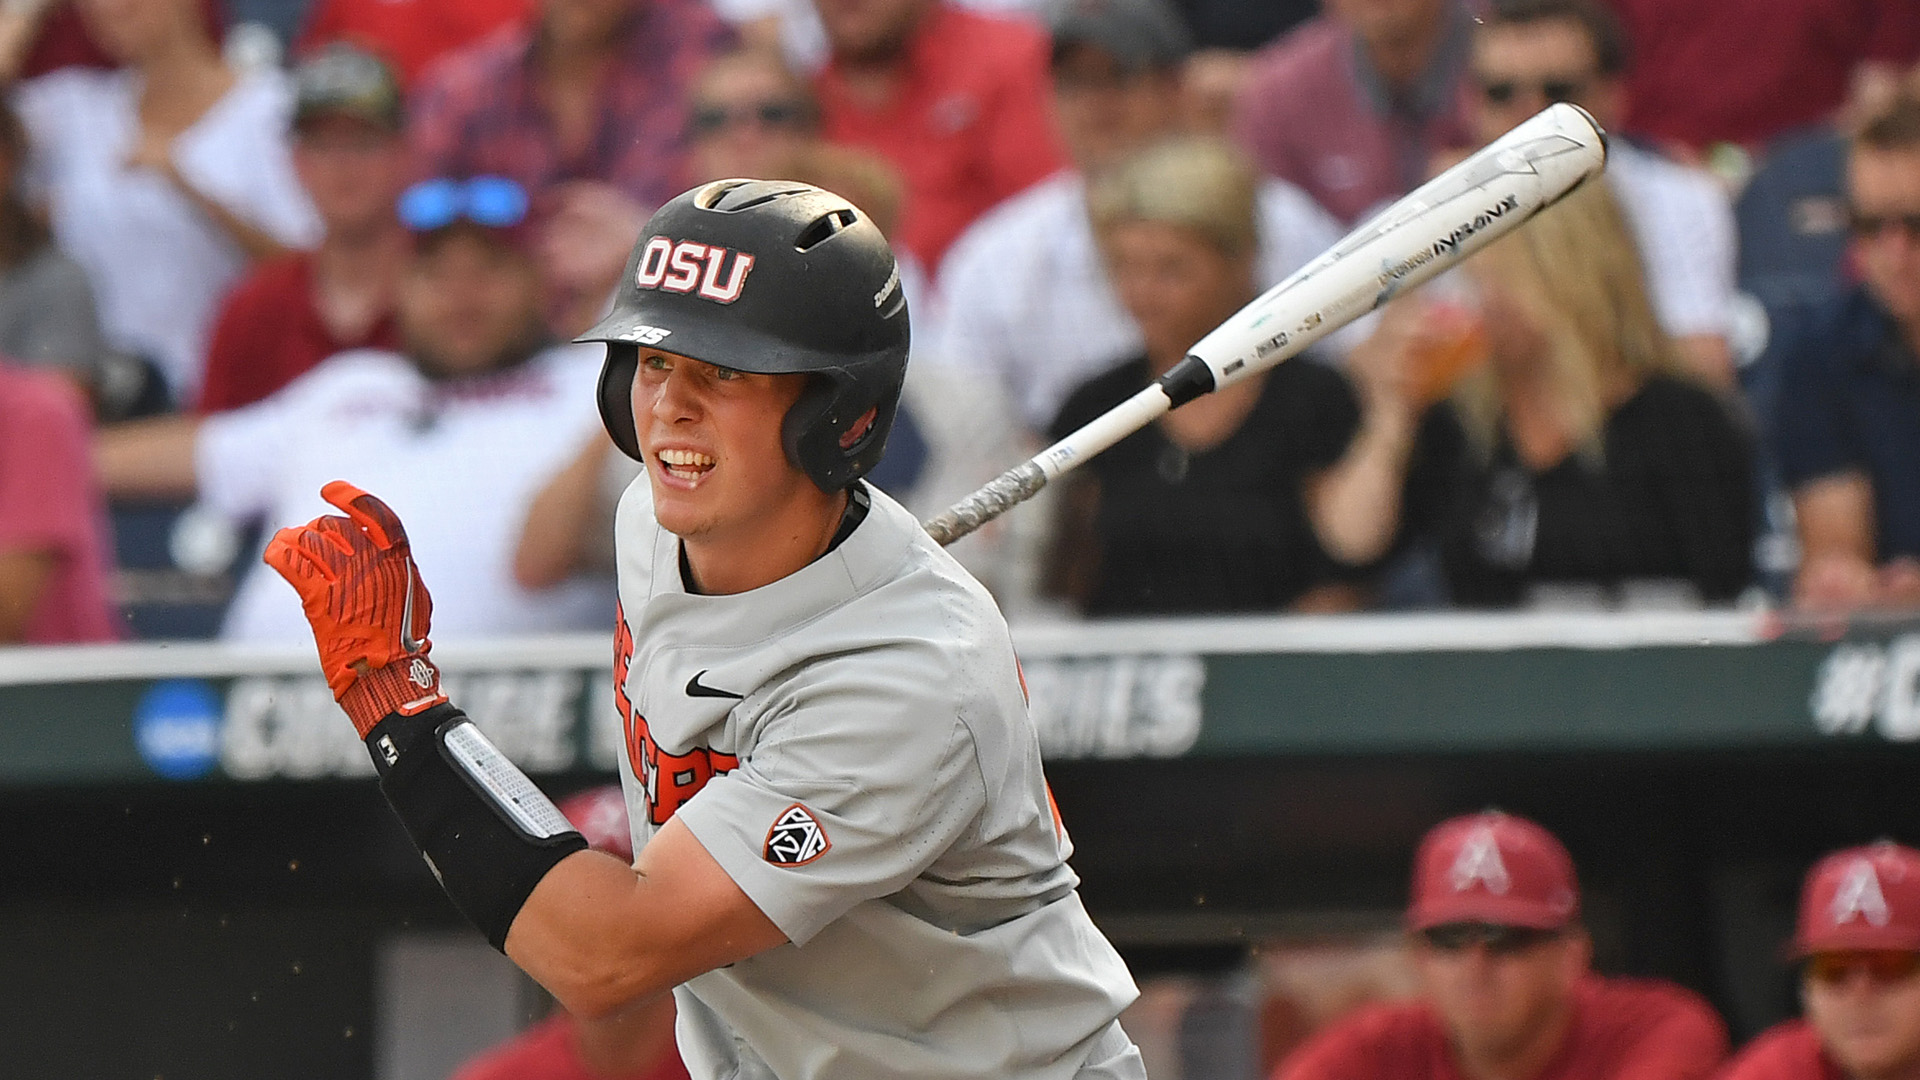 Oregon State Wins The CWS